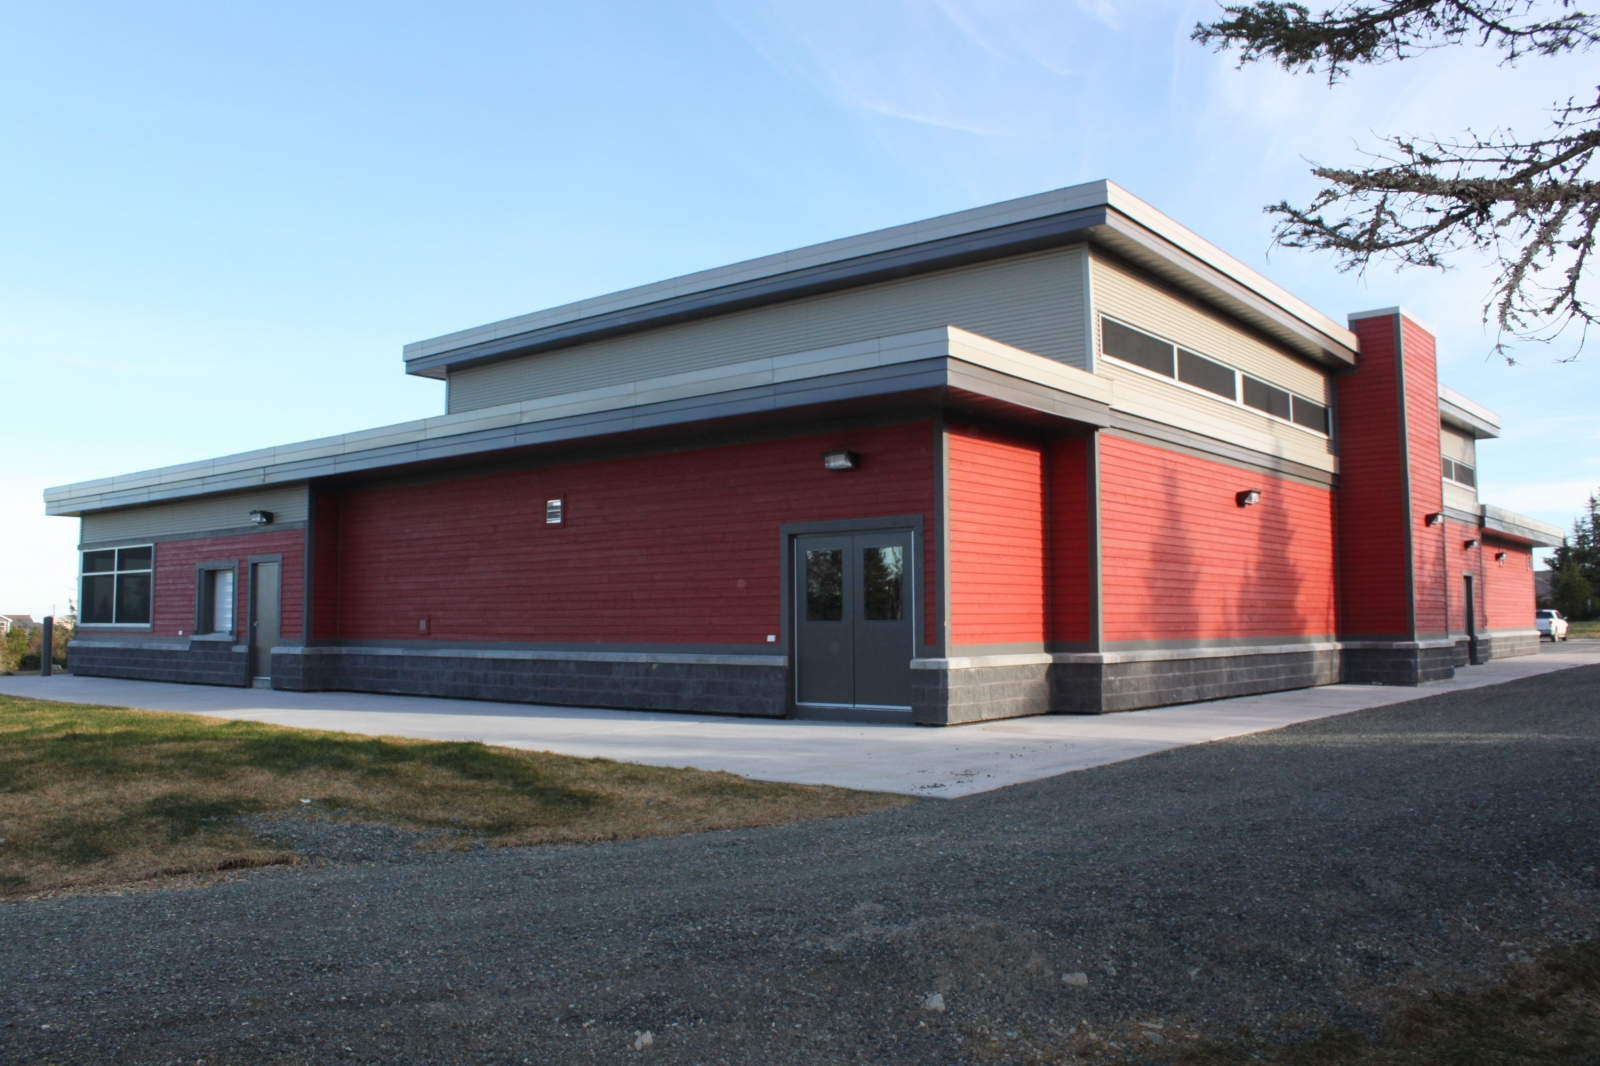 Atlantic WoodWorks Design Awards is a regional program supporting innovation and providing leadership in the use of wood and wood products. One of last year's winning designs was the Southlands Community Centre. Photo © WoodWorks